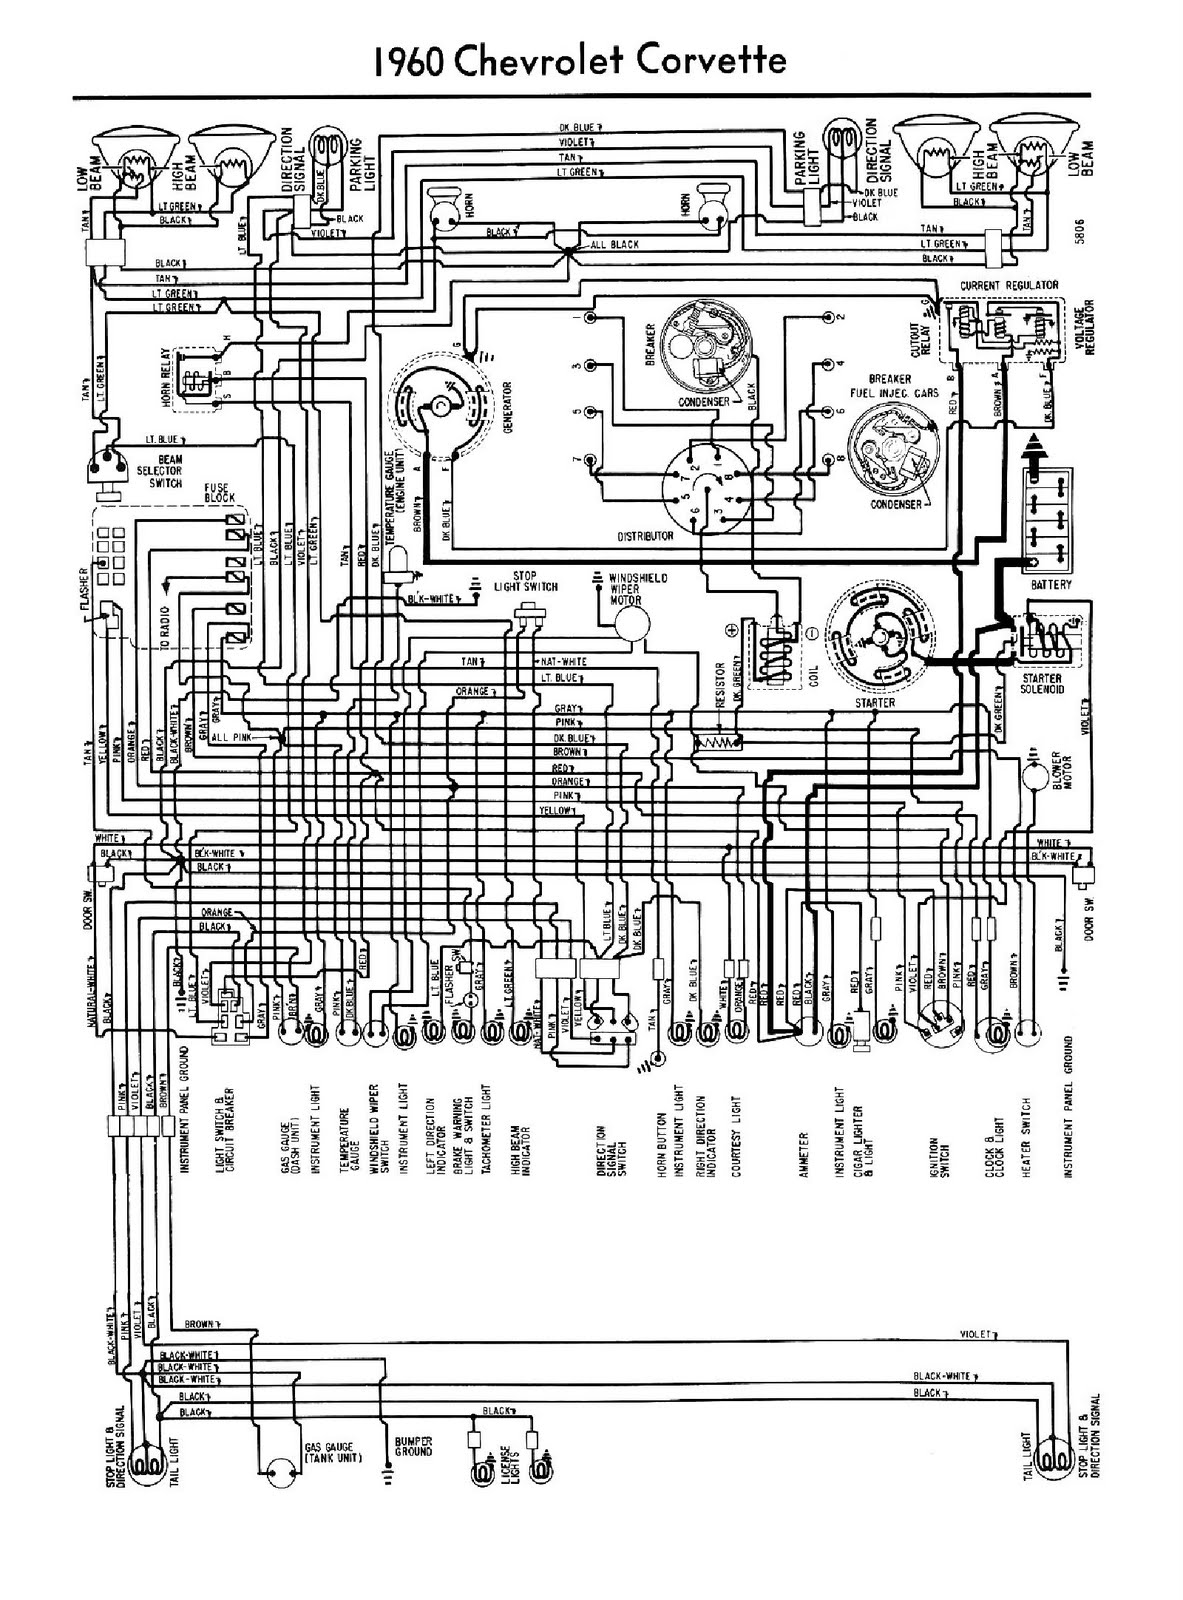 1987 El Camino Fuse Box Wiring Diagram Will Be A Thing 1985 Free Auto 1960 Chevrolet Corvette